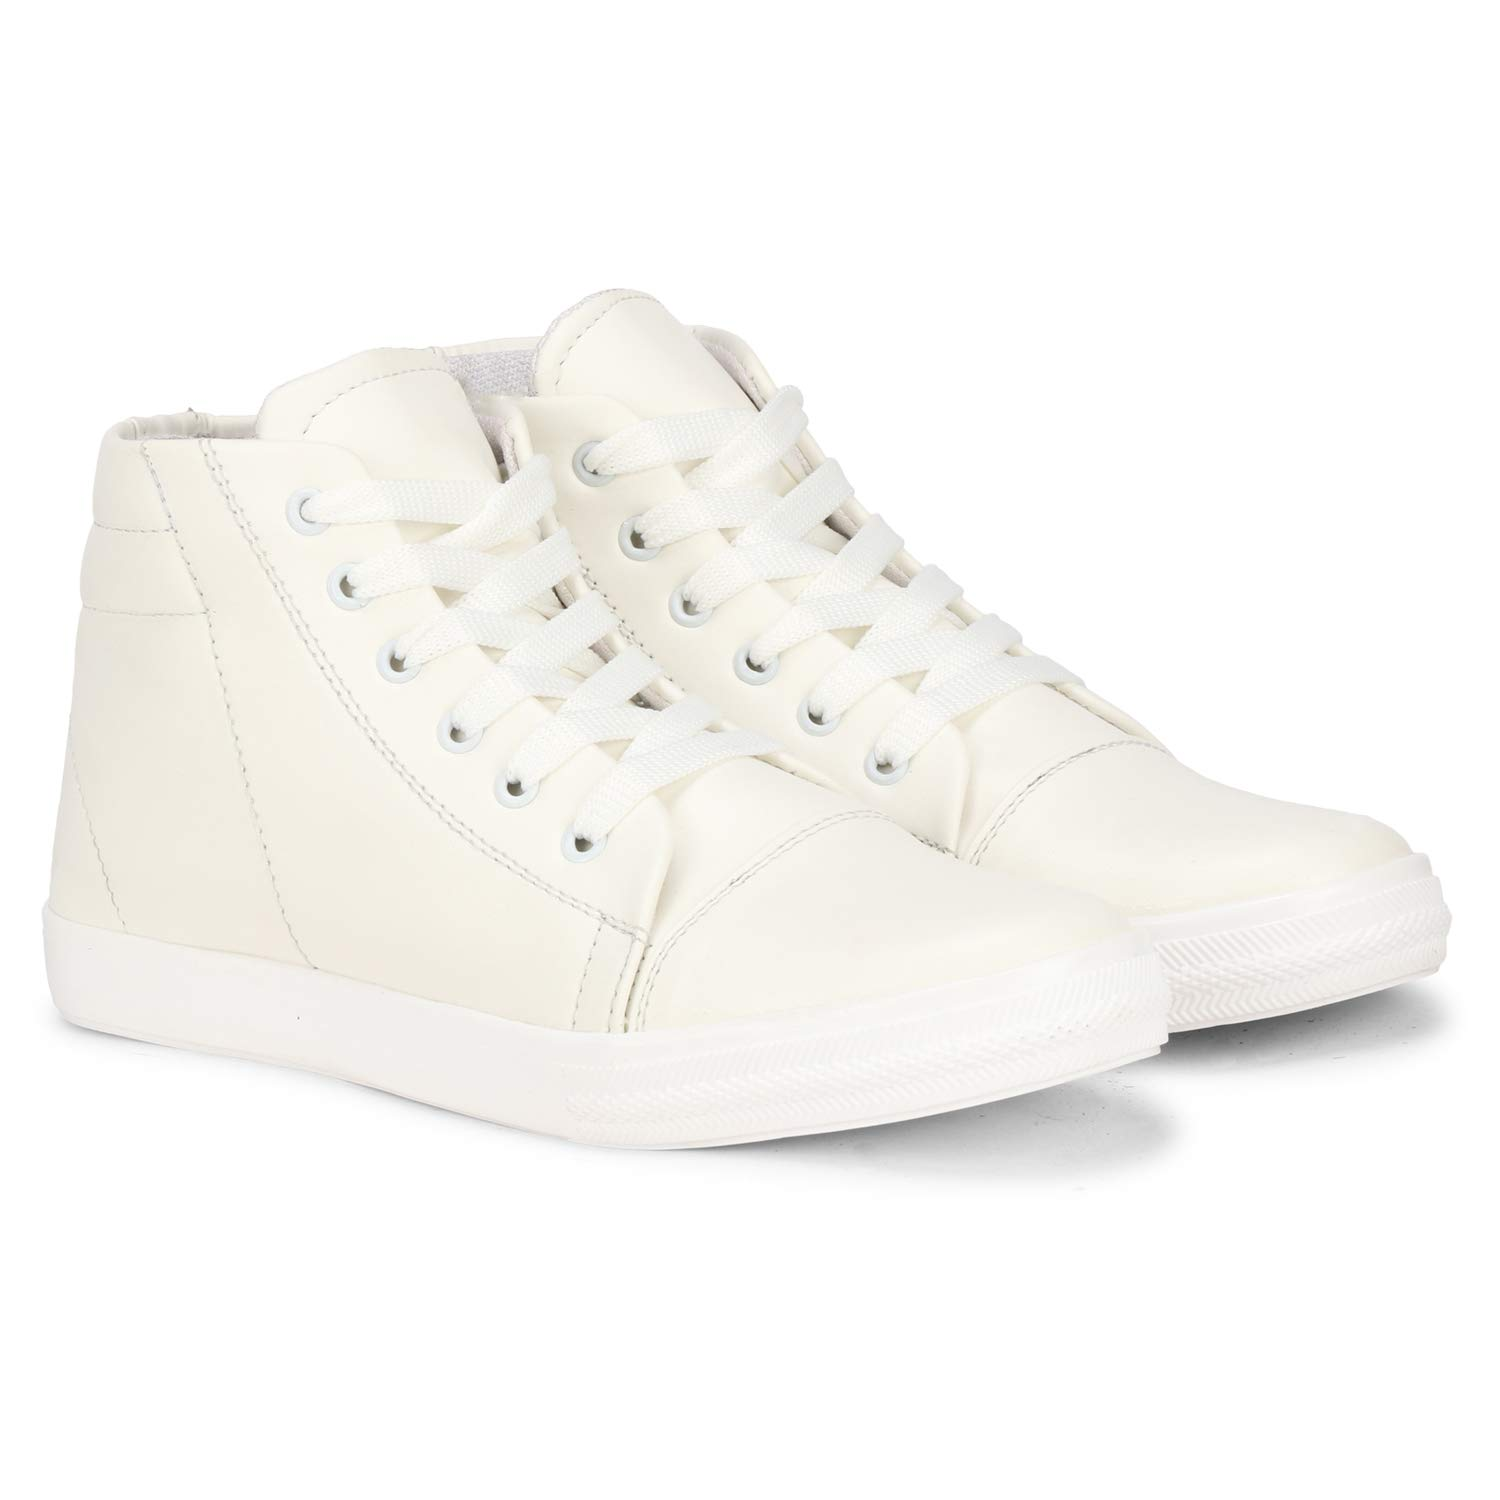 high Neck Sneakers Casual Shoes